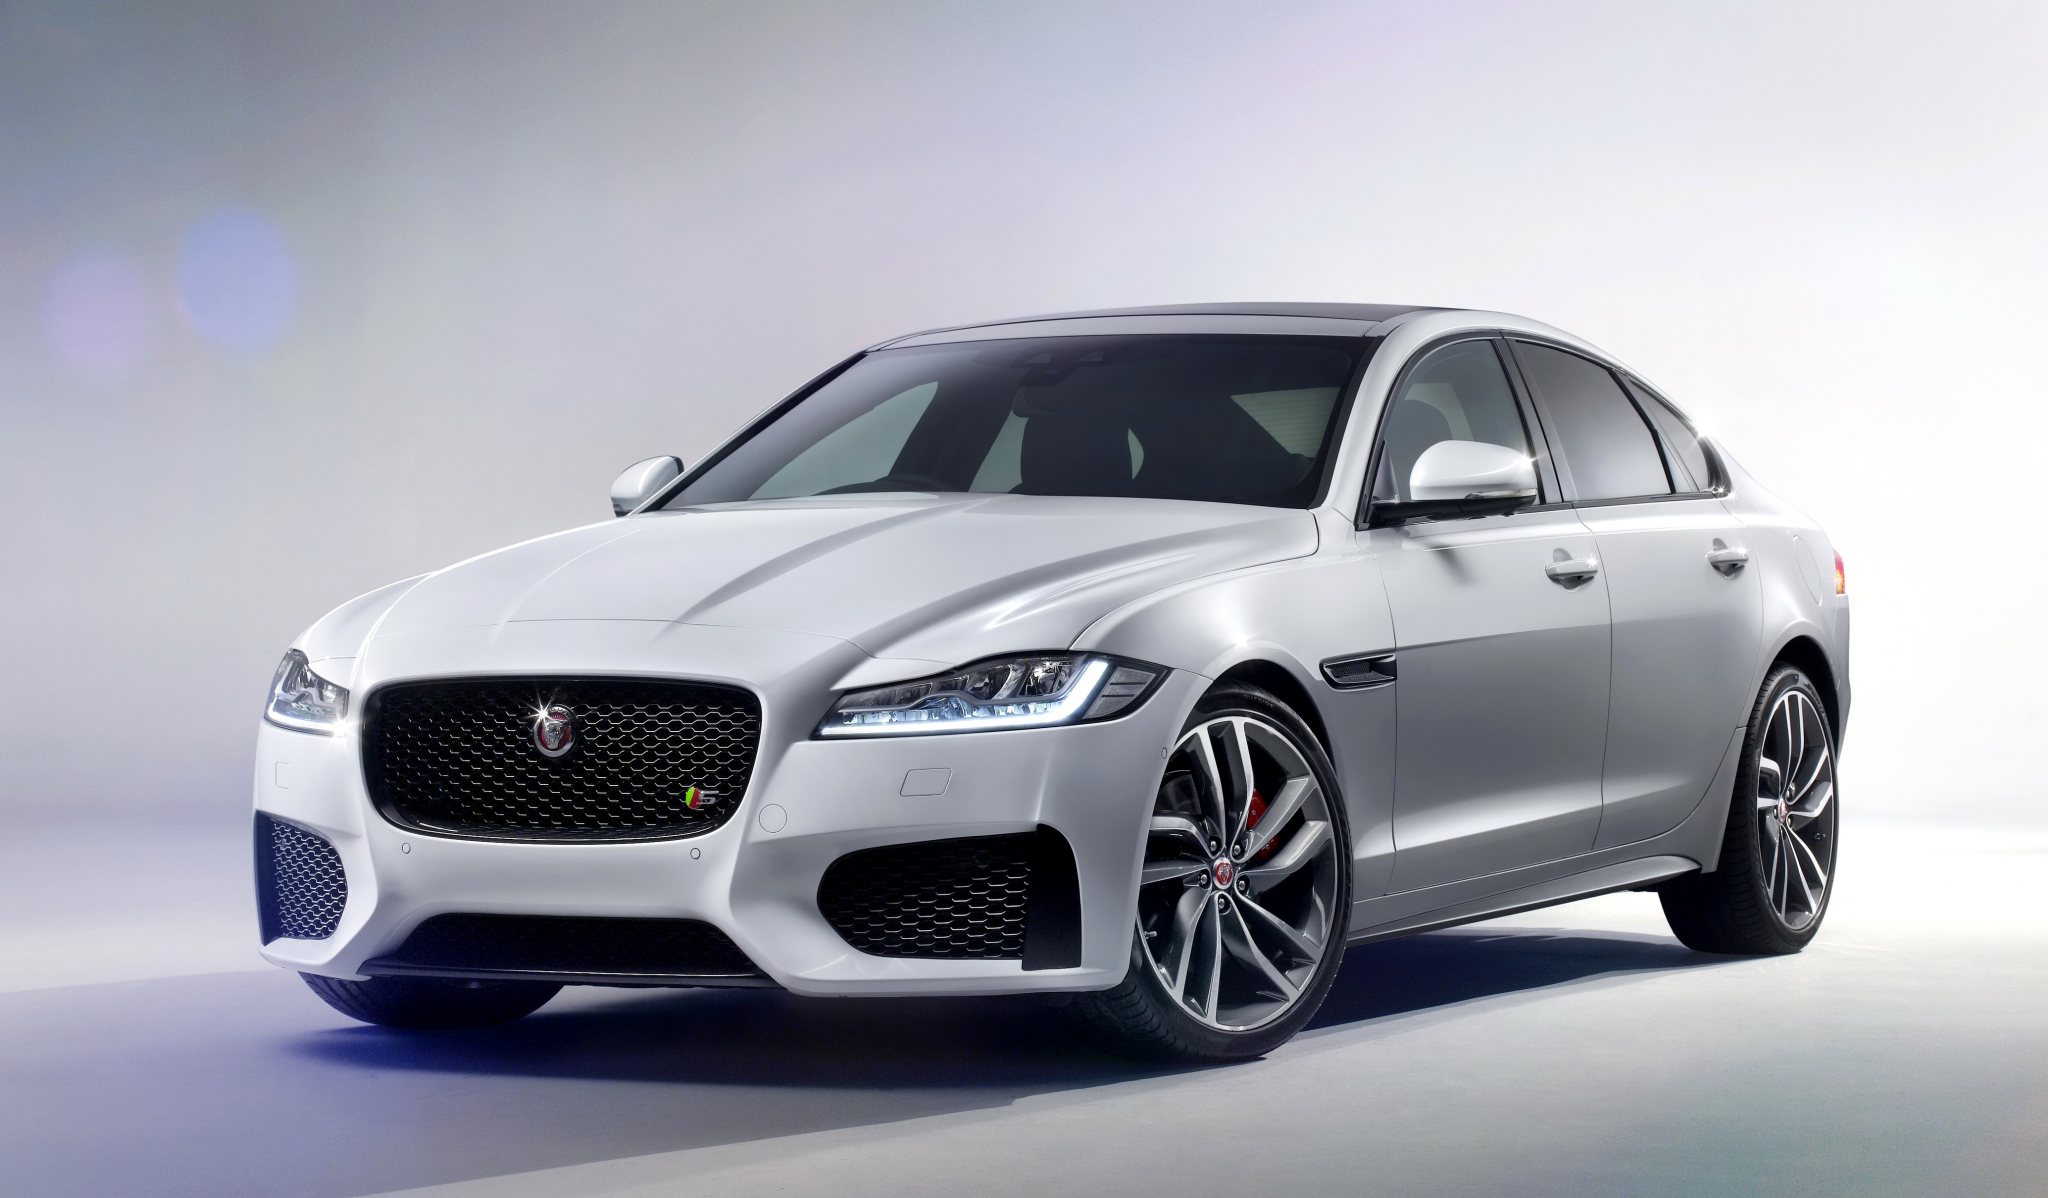 Jaguar Car Wallpaper Wallpapers High Quality: Jaguar XF 2015 HD Wallpapers Free Download